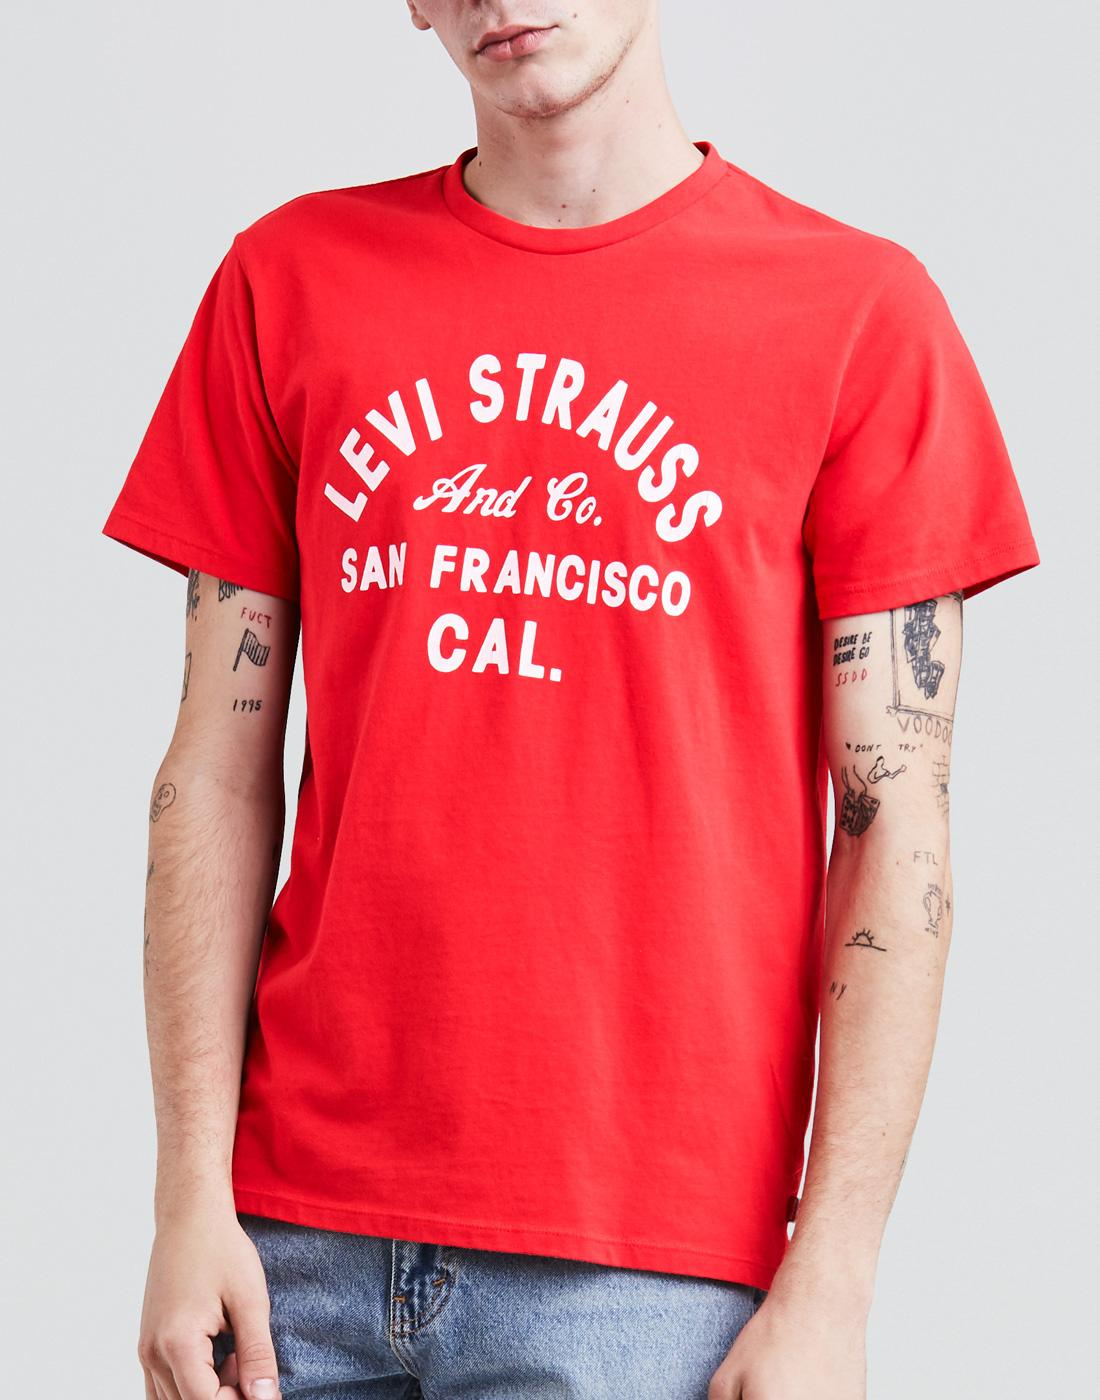 LEVI'S® Mens Retro Indie Levi Strauss & Co T-Shirt